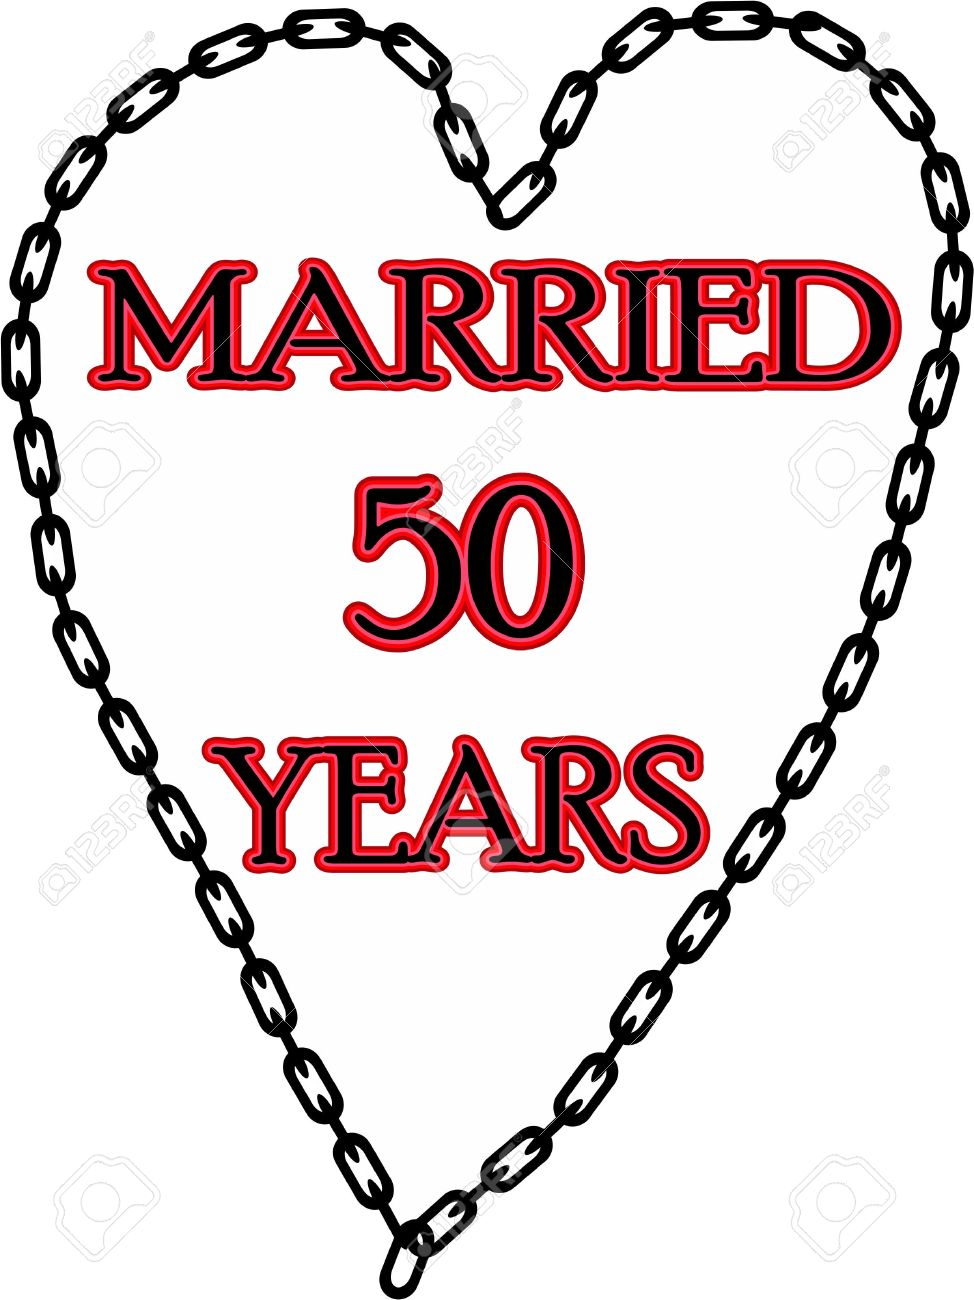 Humoristic Marriage Wedding Anniversary Chained For 50 Stock